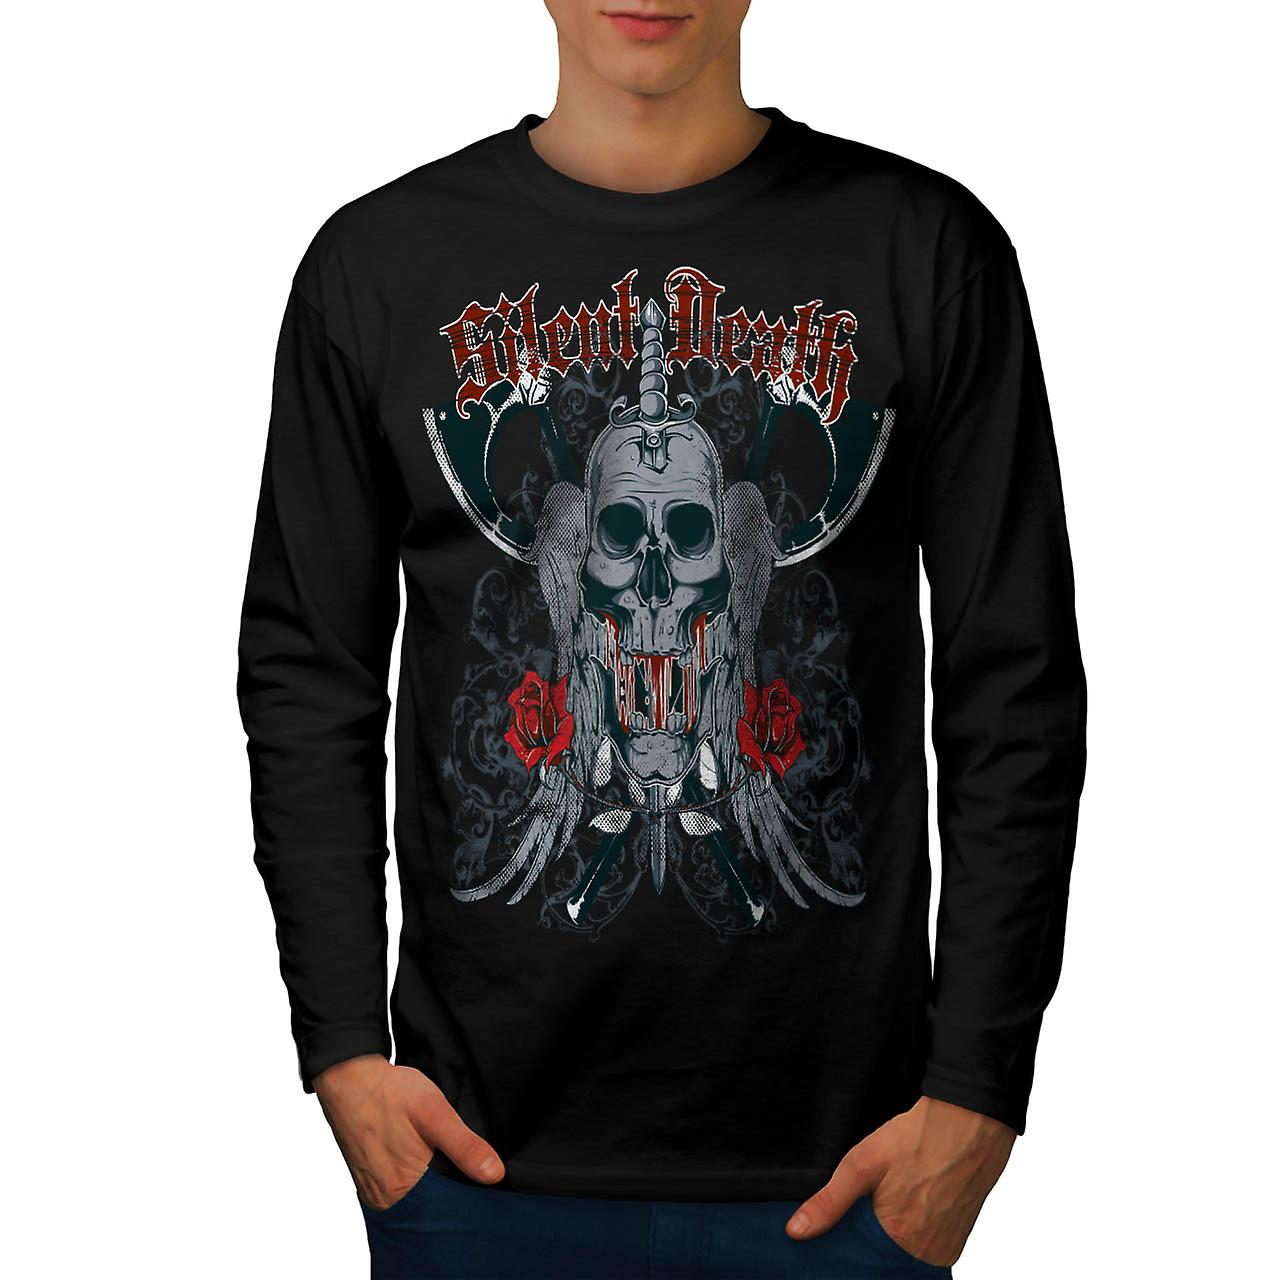 Silent Death Horror Skull Rage Men Black Long Sleeve T-shirt | Wellcoda